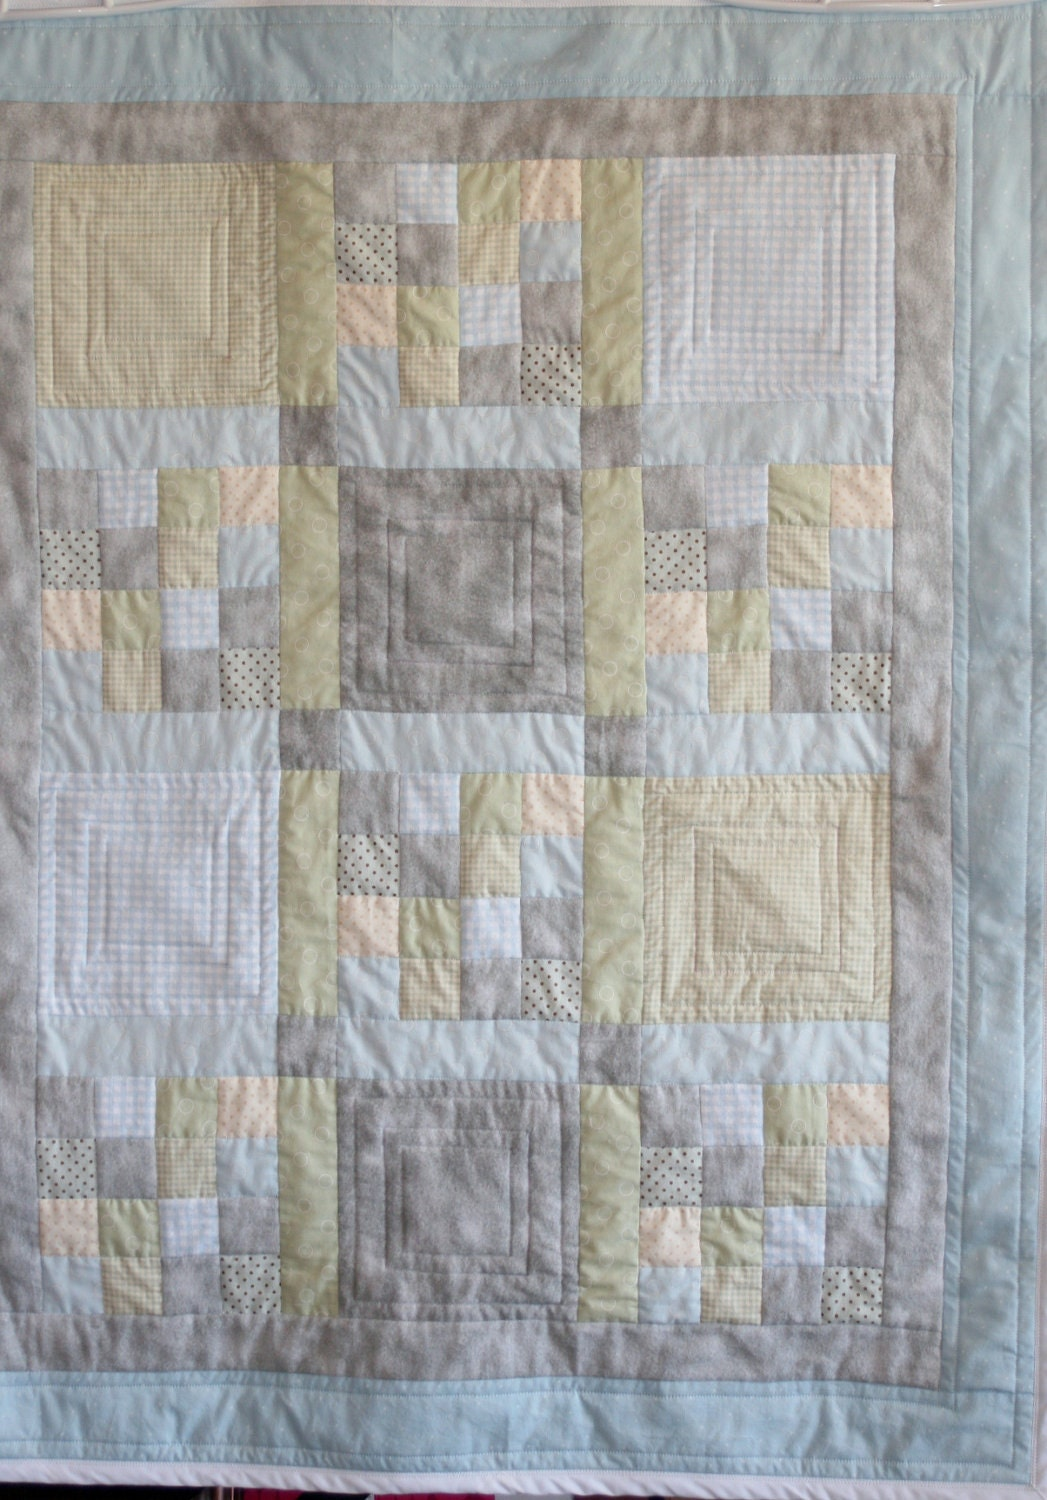 Custom Made Baby Quilt Soft Cool Greens Blues & Gray's One of a Kind - Customquiltsbykathy